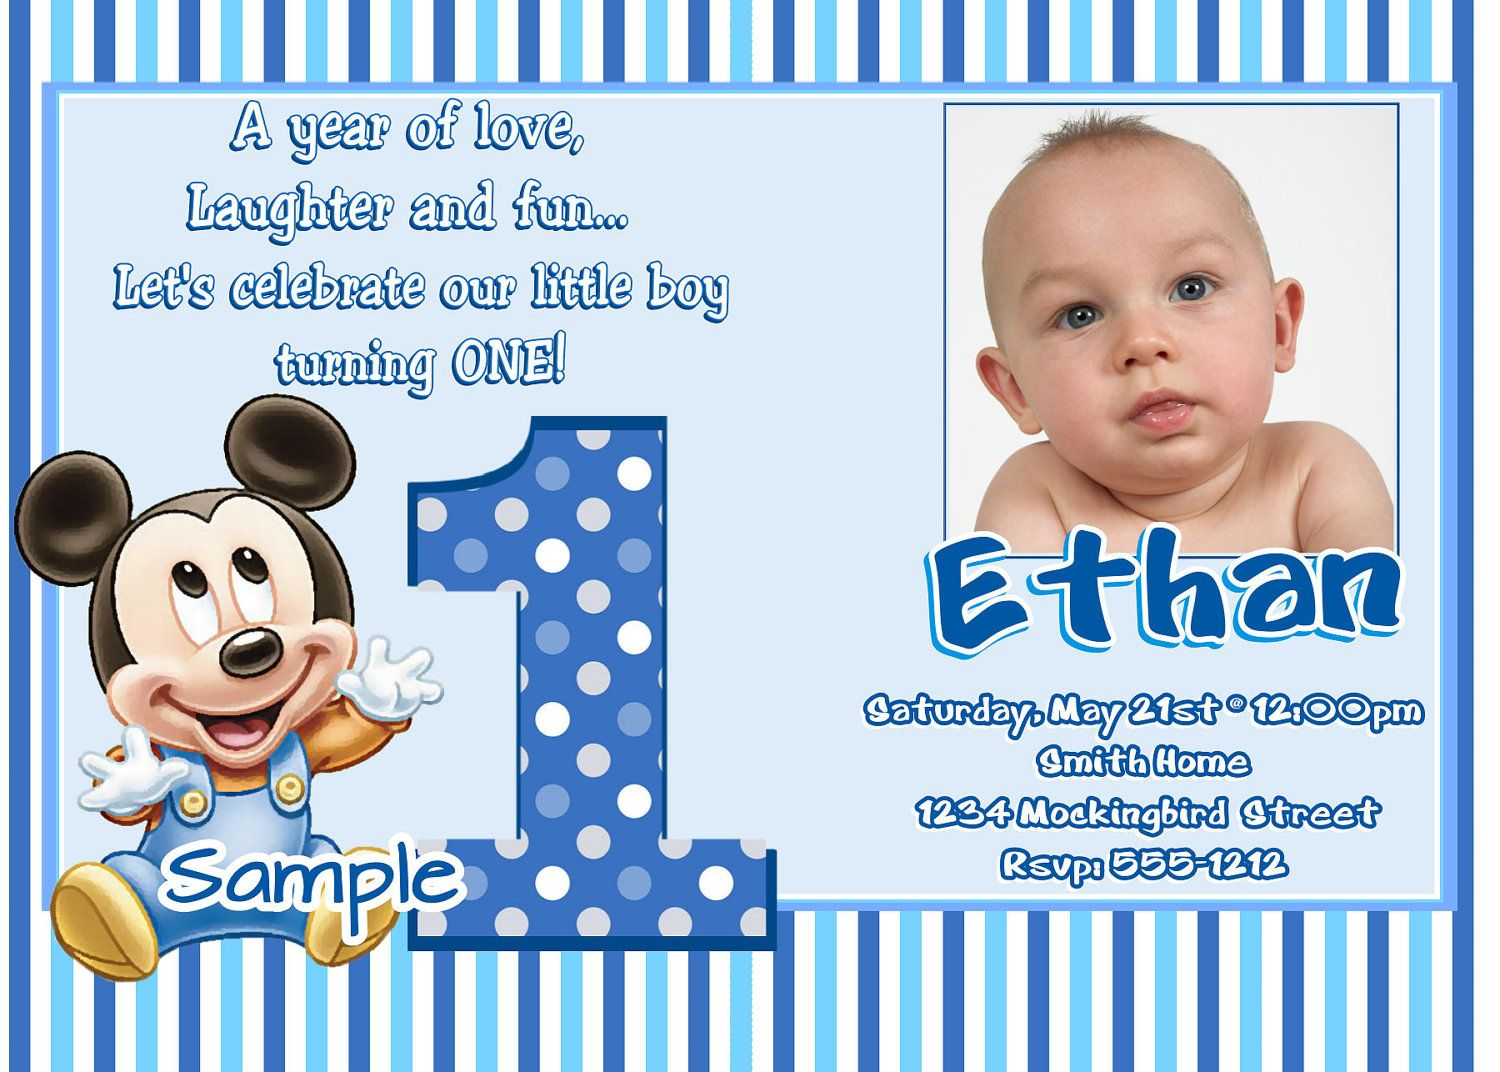 Free 1st birthday invitation maker invitation sample pinterest birthday invitation templates stopboris